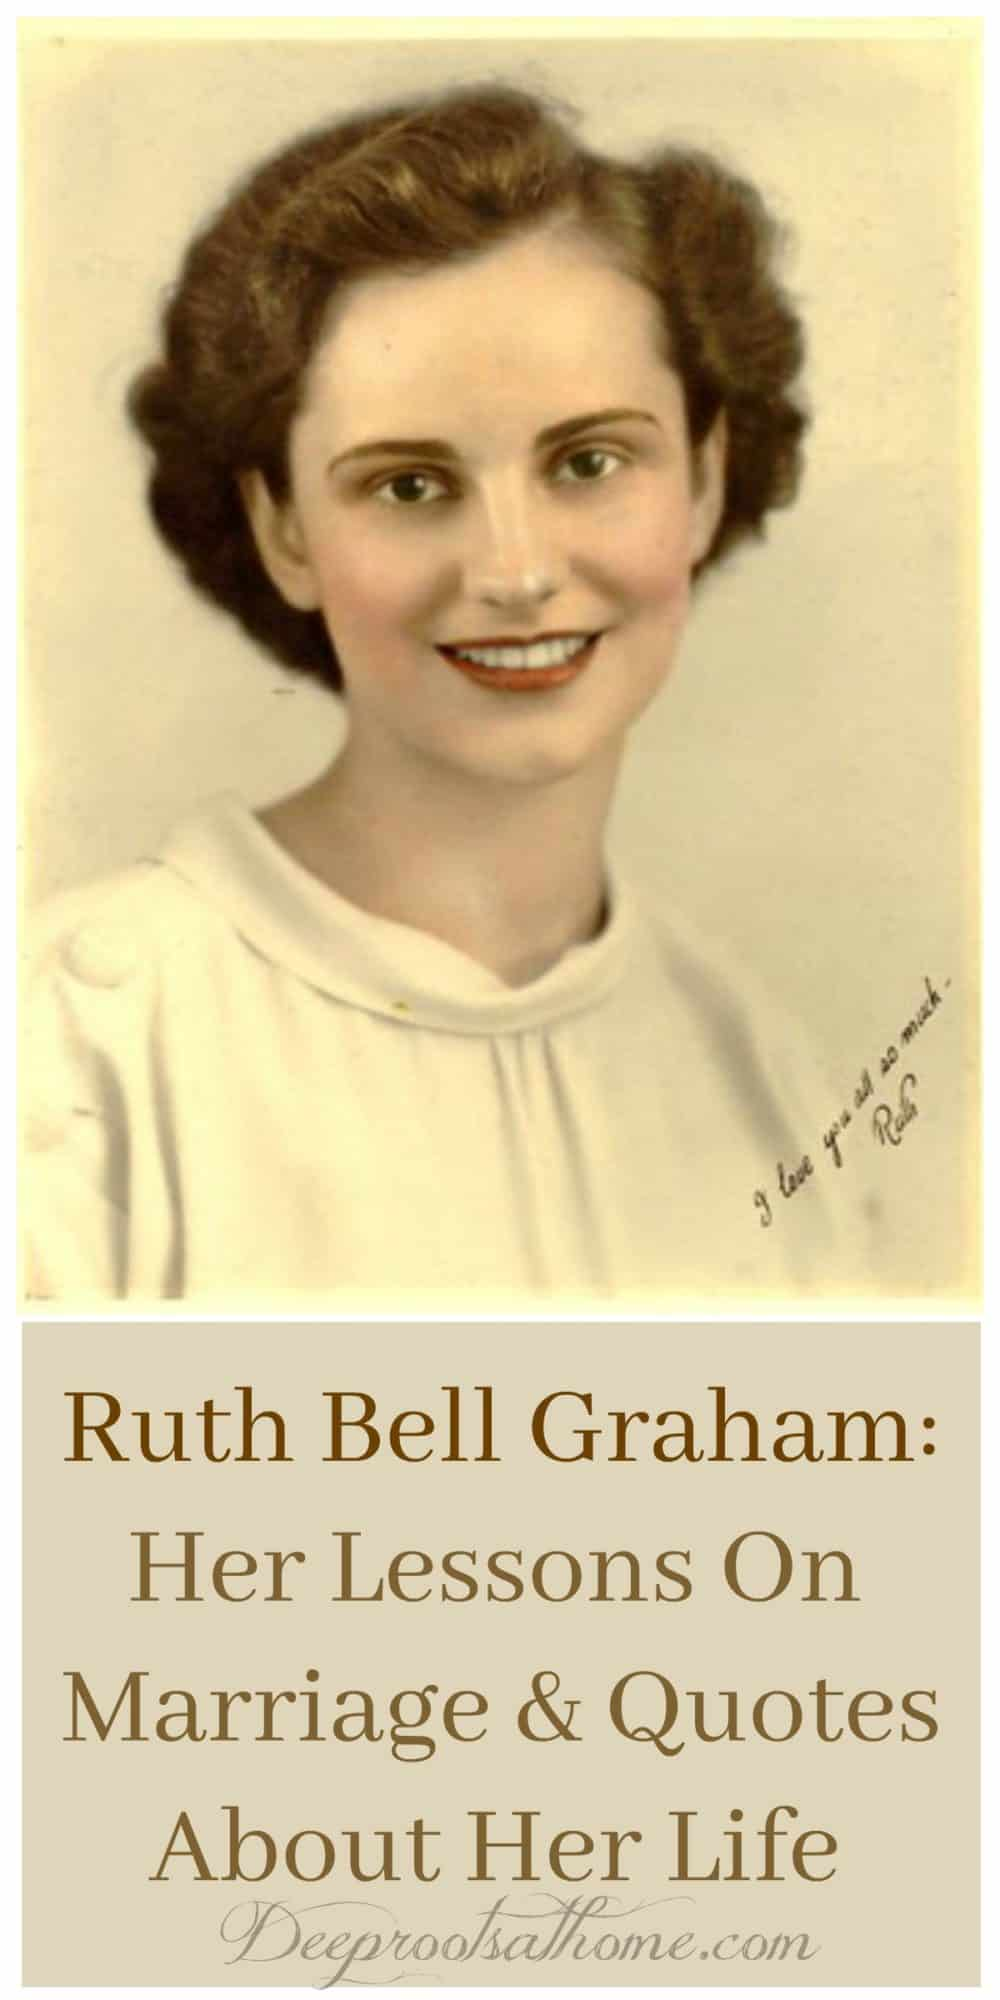 Ruth Bell Graham: Her Lessons On Marriage & Quotes About Her Life, old photo, vintage image, yellowed old photograph, photograph of young Ruth Bell Graham, Billy Graham's wife, Ruth and Billy, quotes,